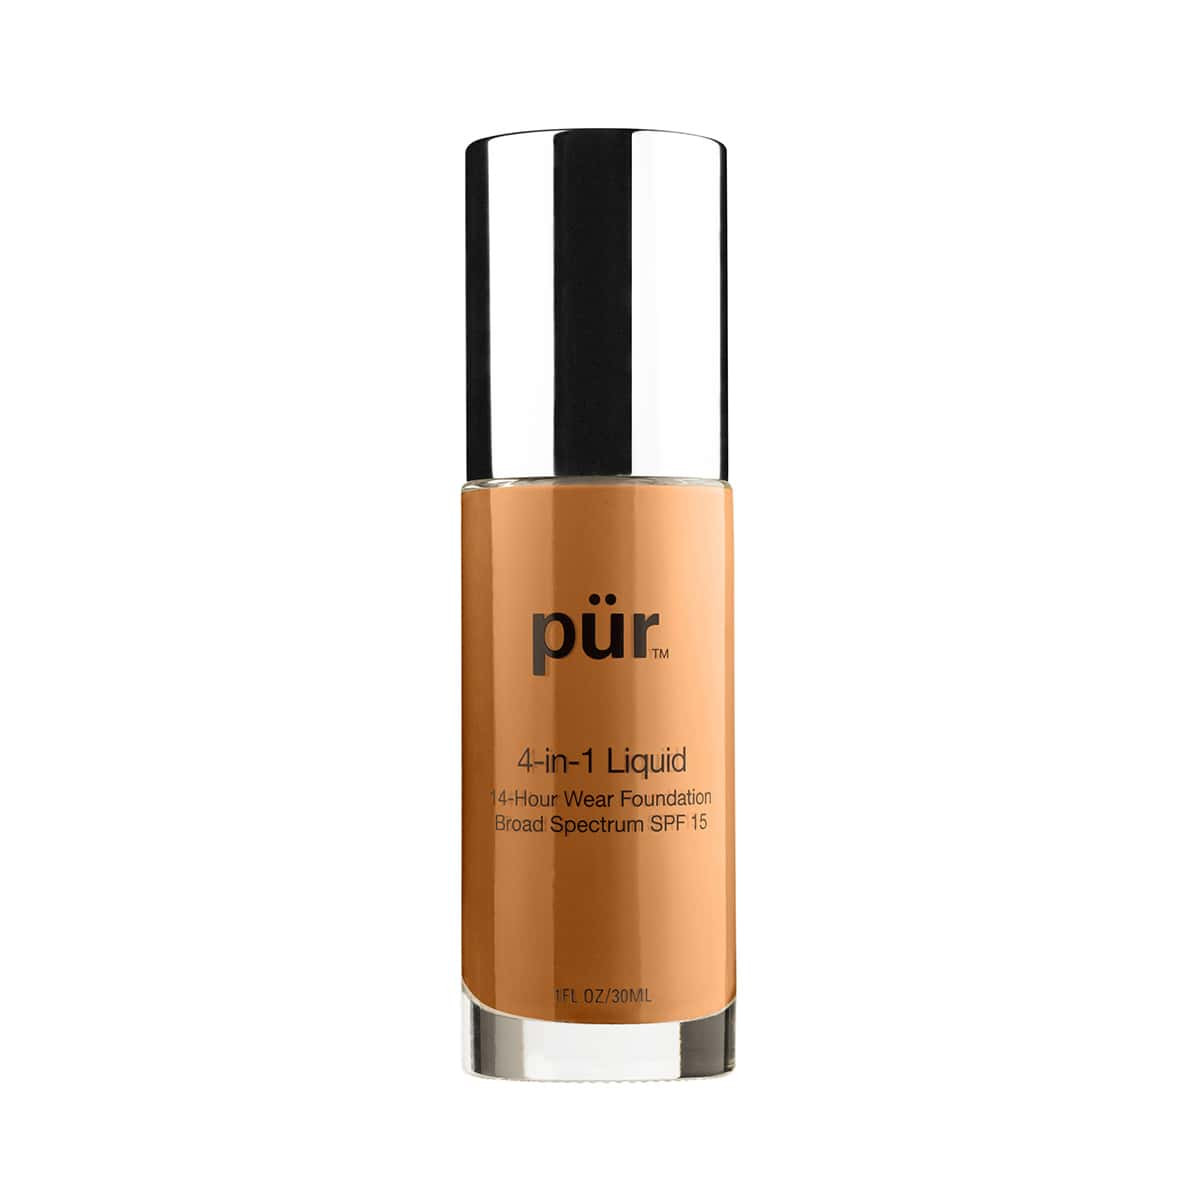 4-in-1 Liquid Foundation Deep